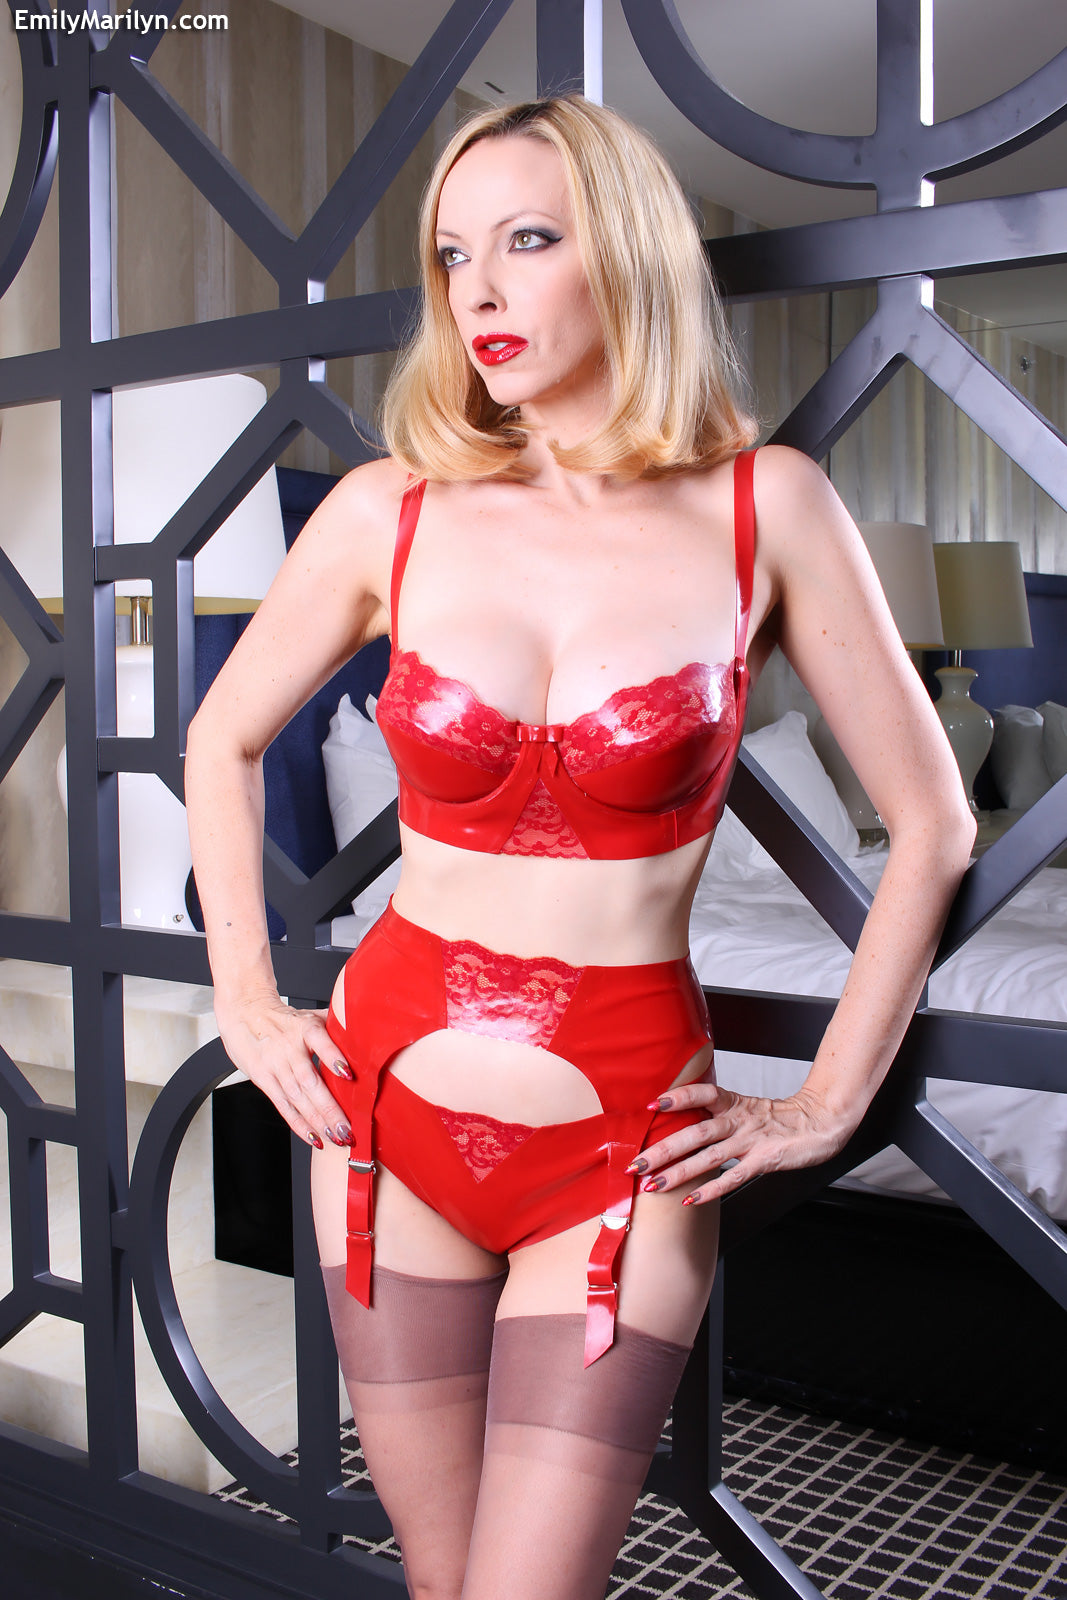 Latex lace Ruby bra